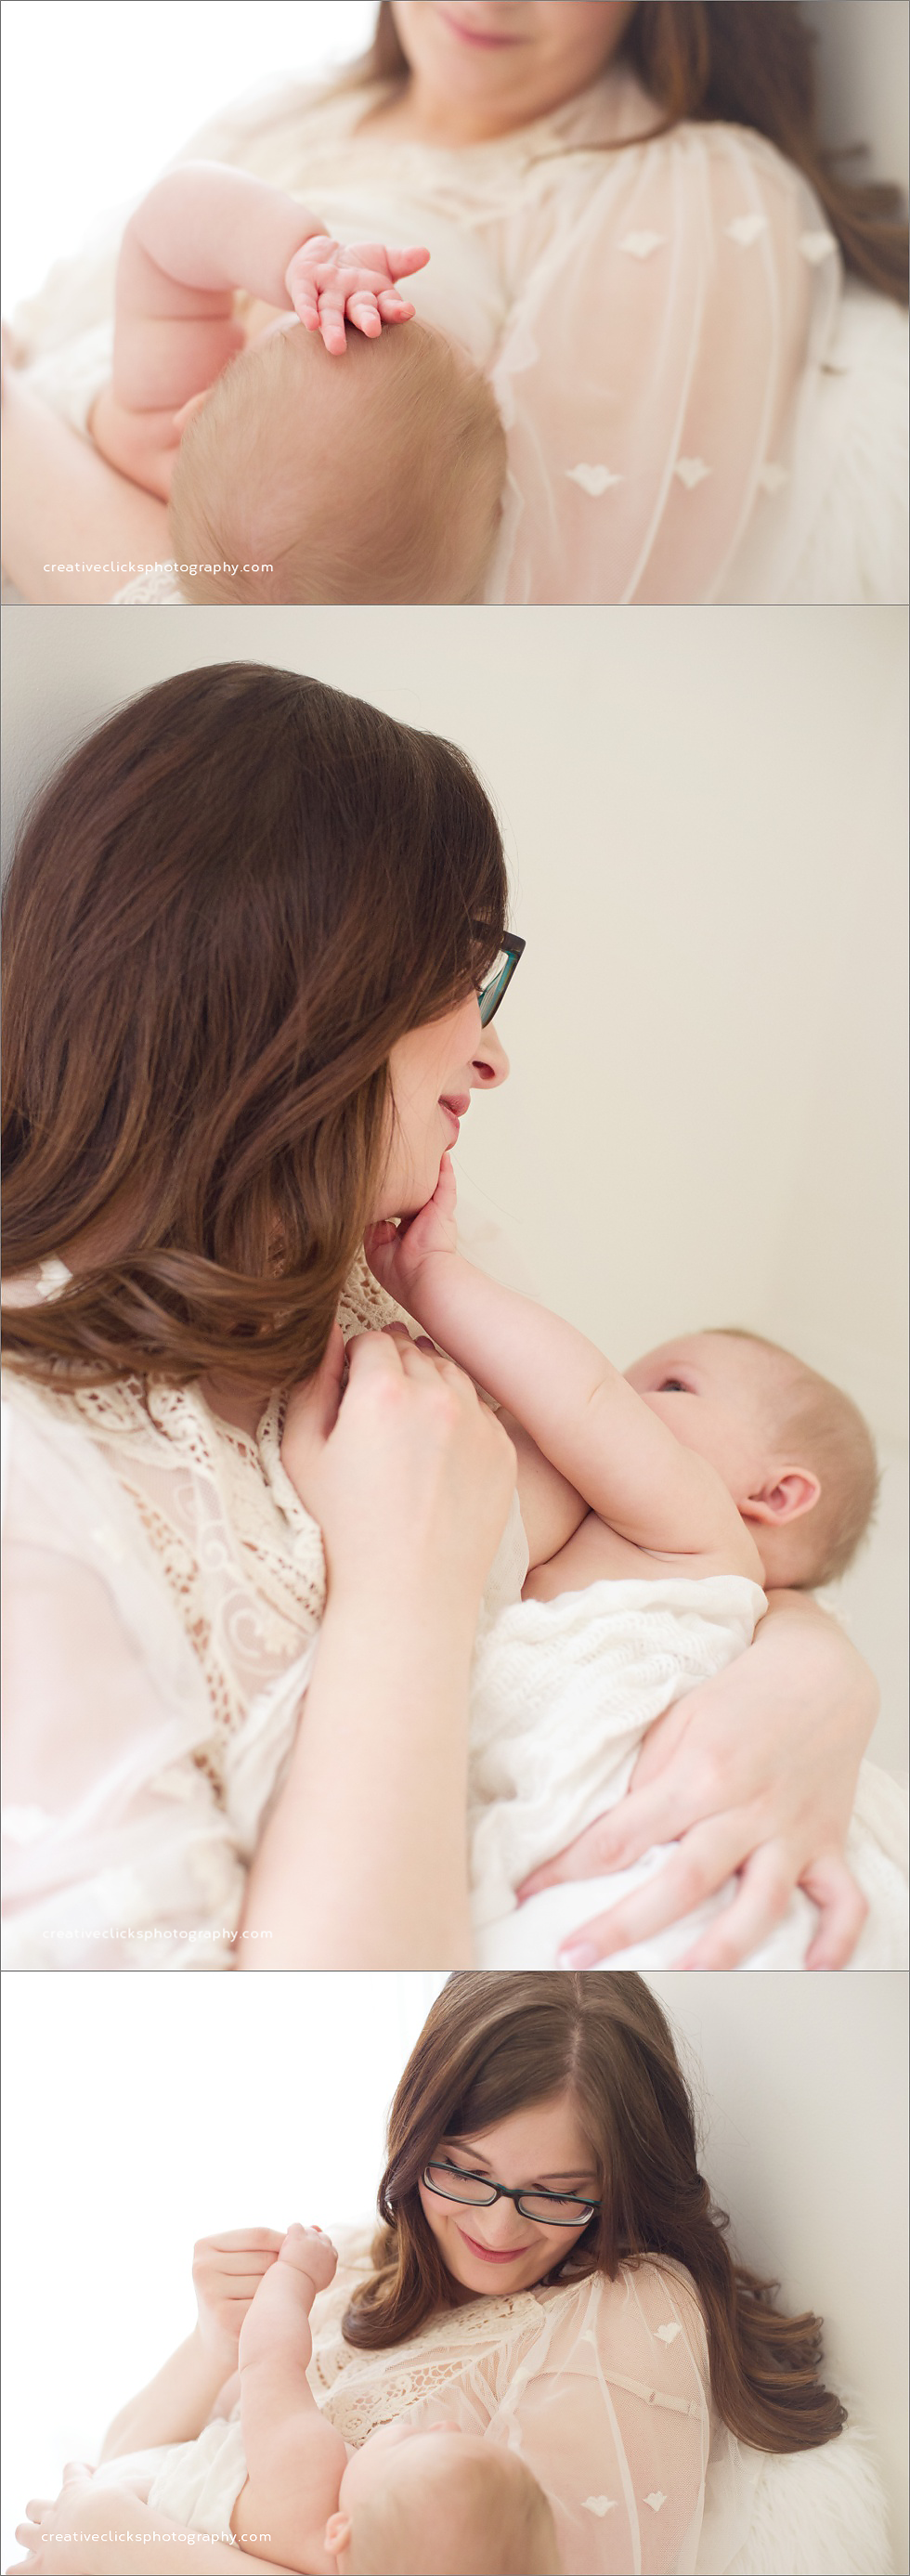 mommy and me nursing session niagara baby photographer